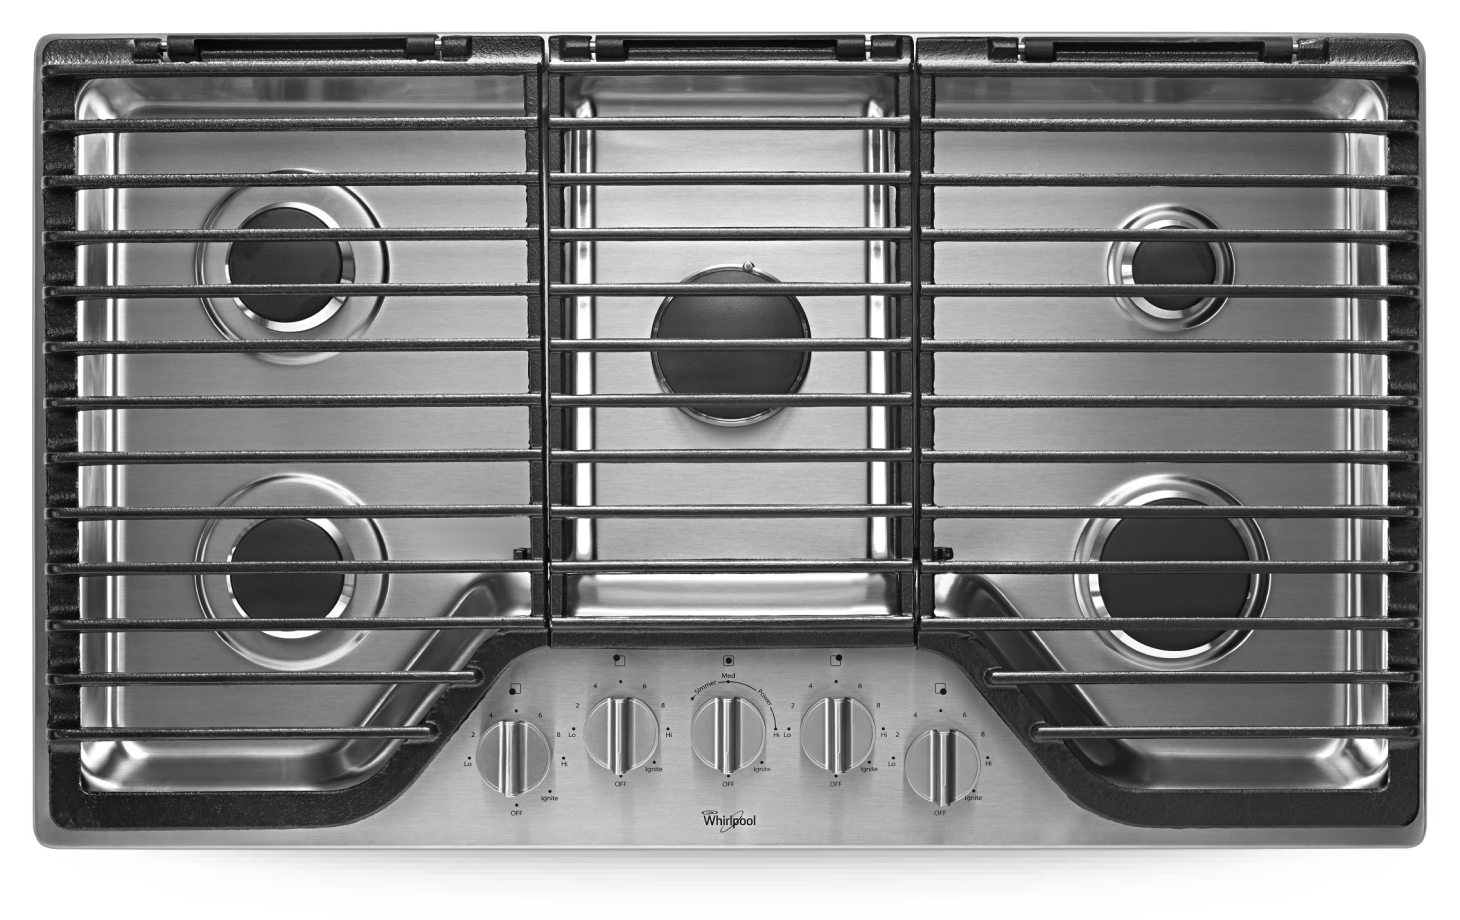 uploads gas stove gas stove PNG36 4